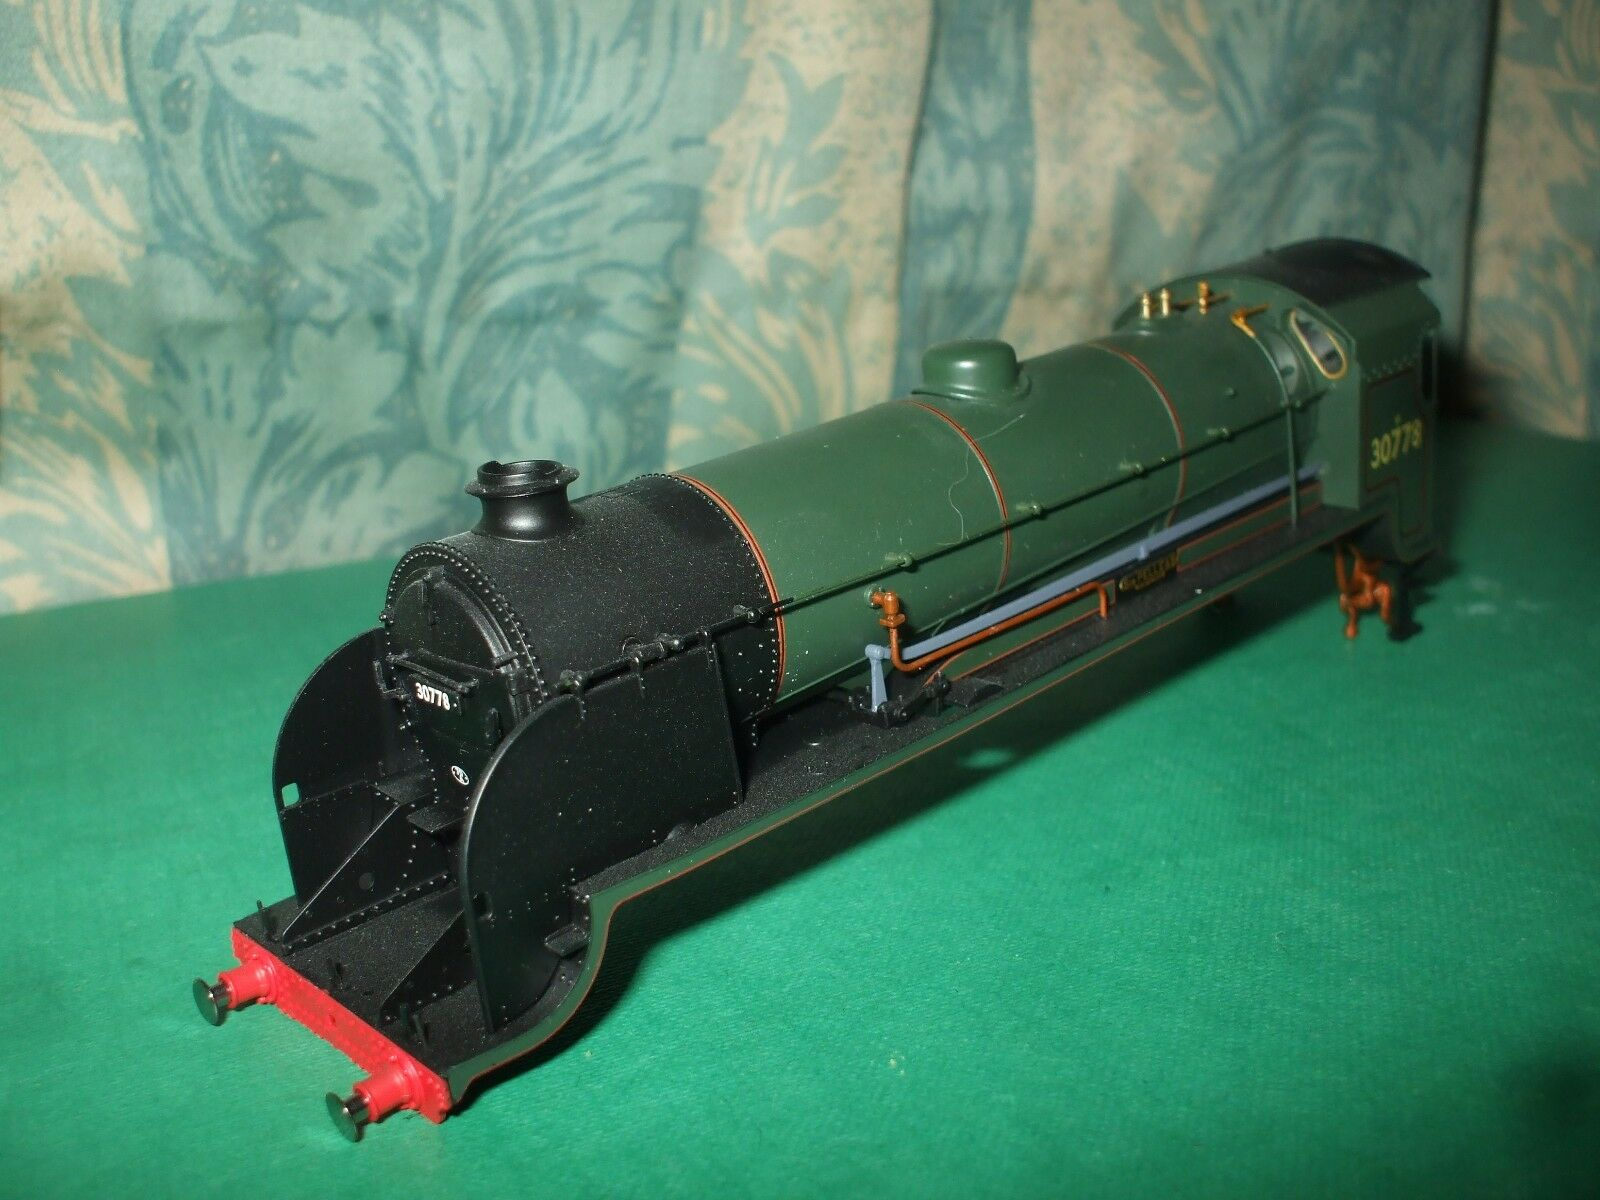 HORNBY EX SR N15 KING ARTHUR CLASS LOCO BODY ONLY - SIR PELLEAS